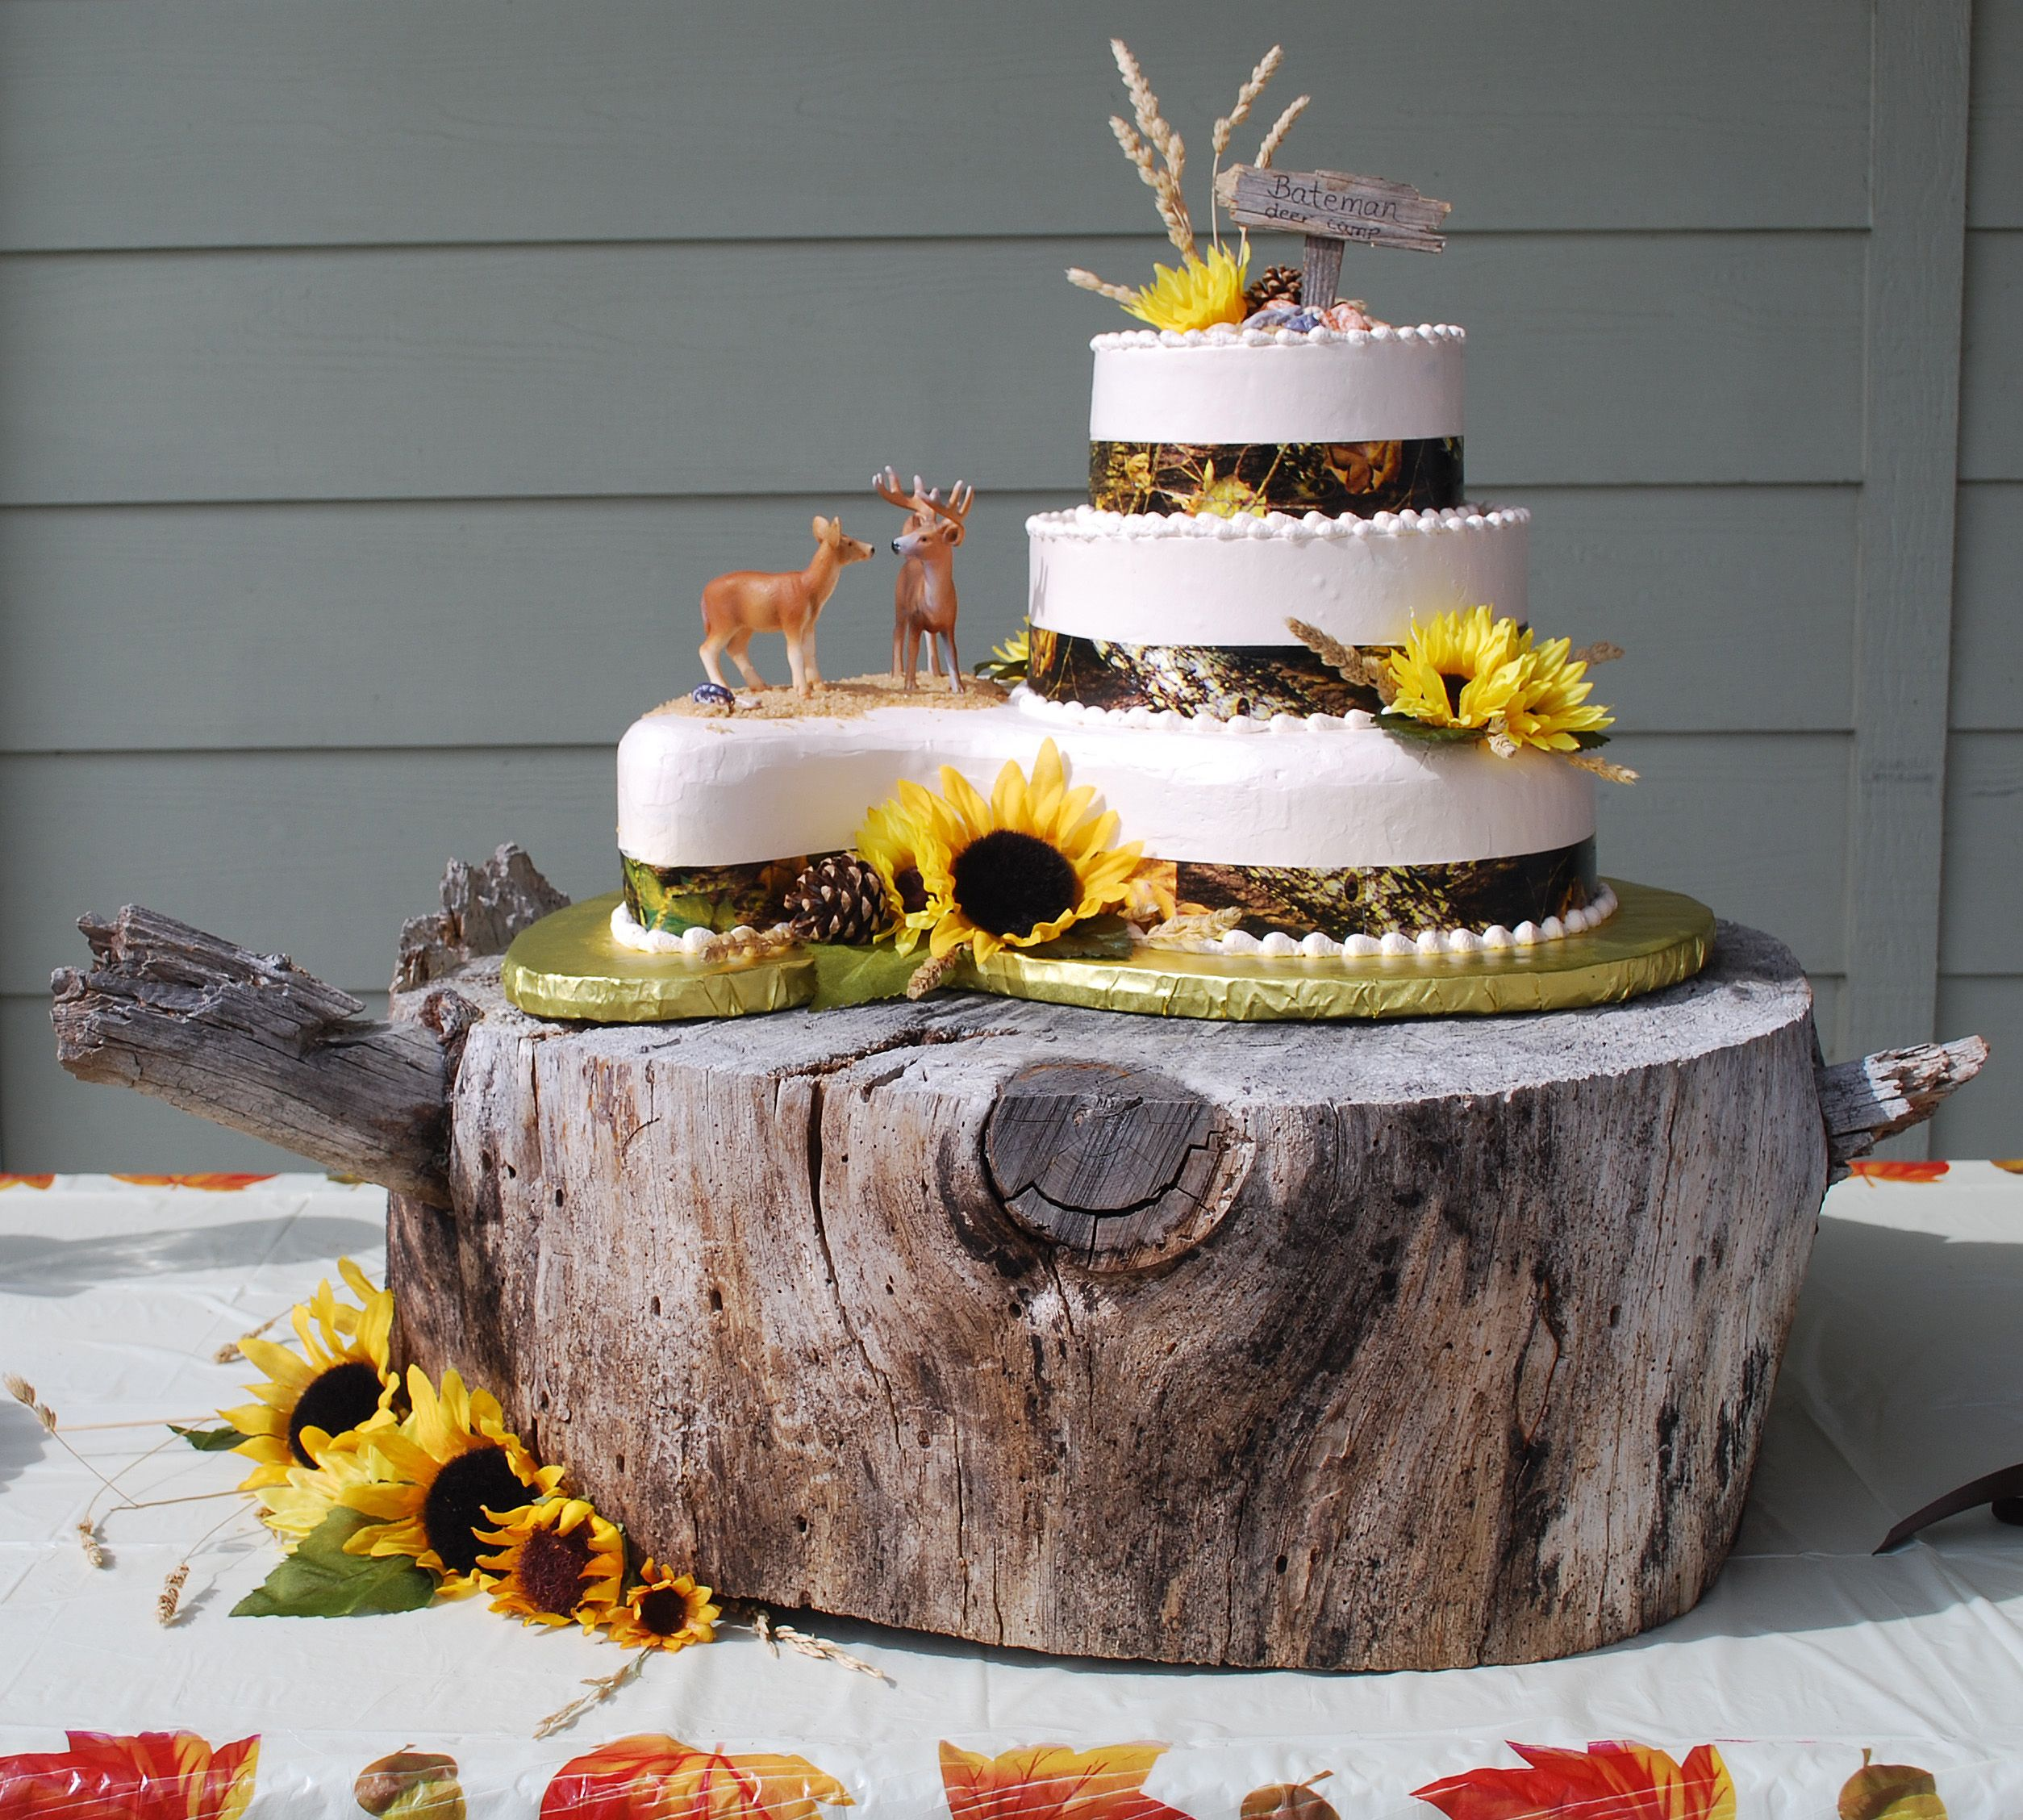 Camo Wedding Cake With Sunflowers And Rustic Wood Slab